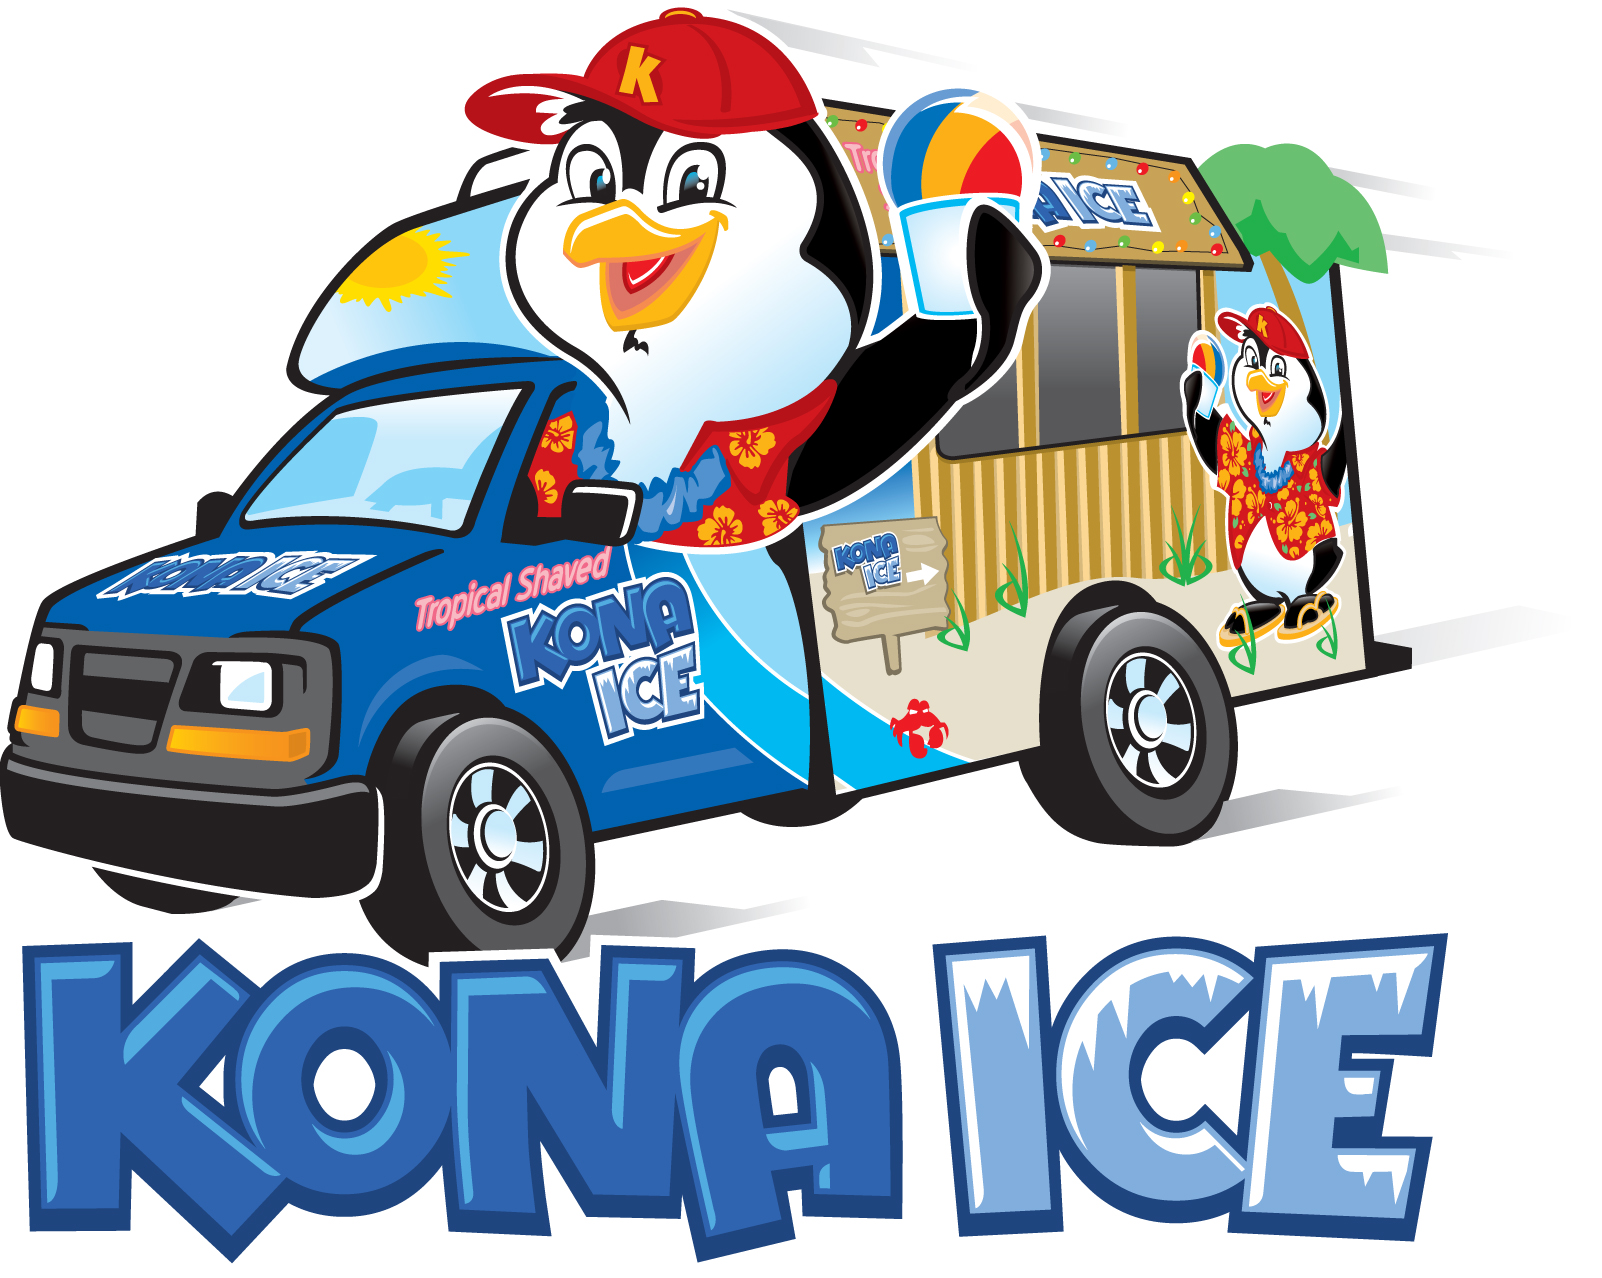 Pizza and Kona Ice for school wide picnic.